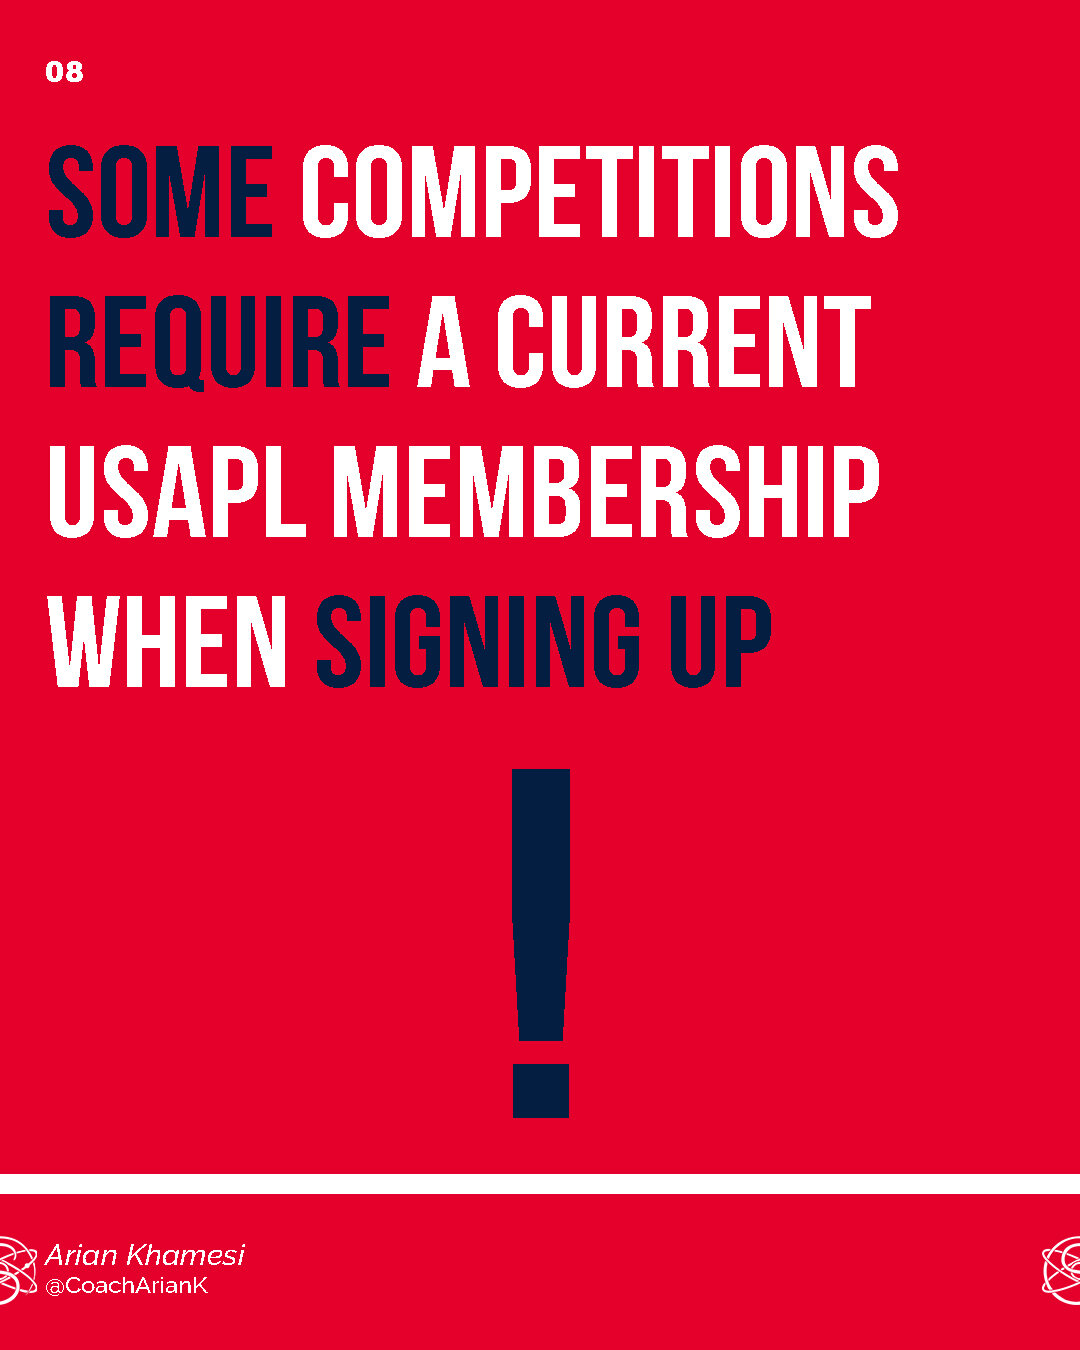 Competing-in-USAPL_08.jpg